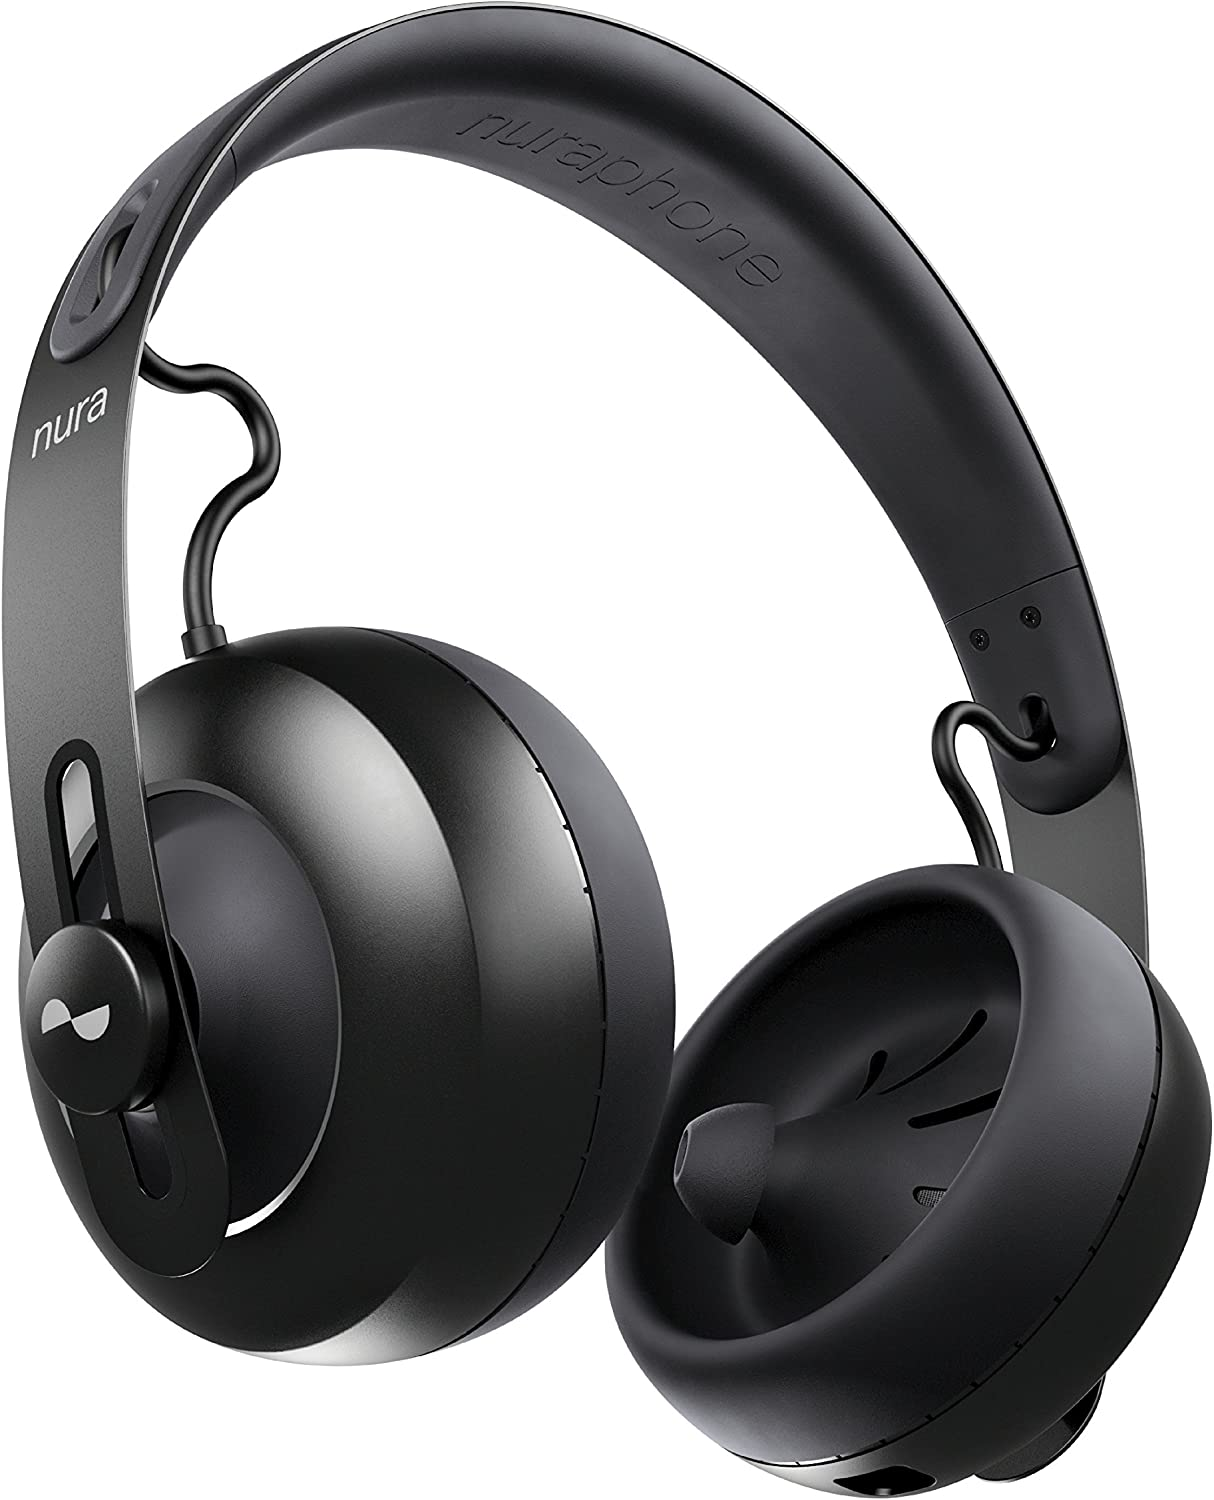 nuraphone — Wireless Bluetooth Over Ear Headphones with Earbuds, Creates Personalised Sound, Active Noise Cancellation (ANC), Social Mode, Multi tap